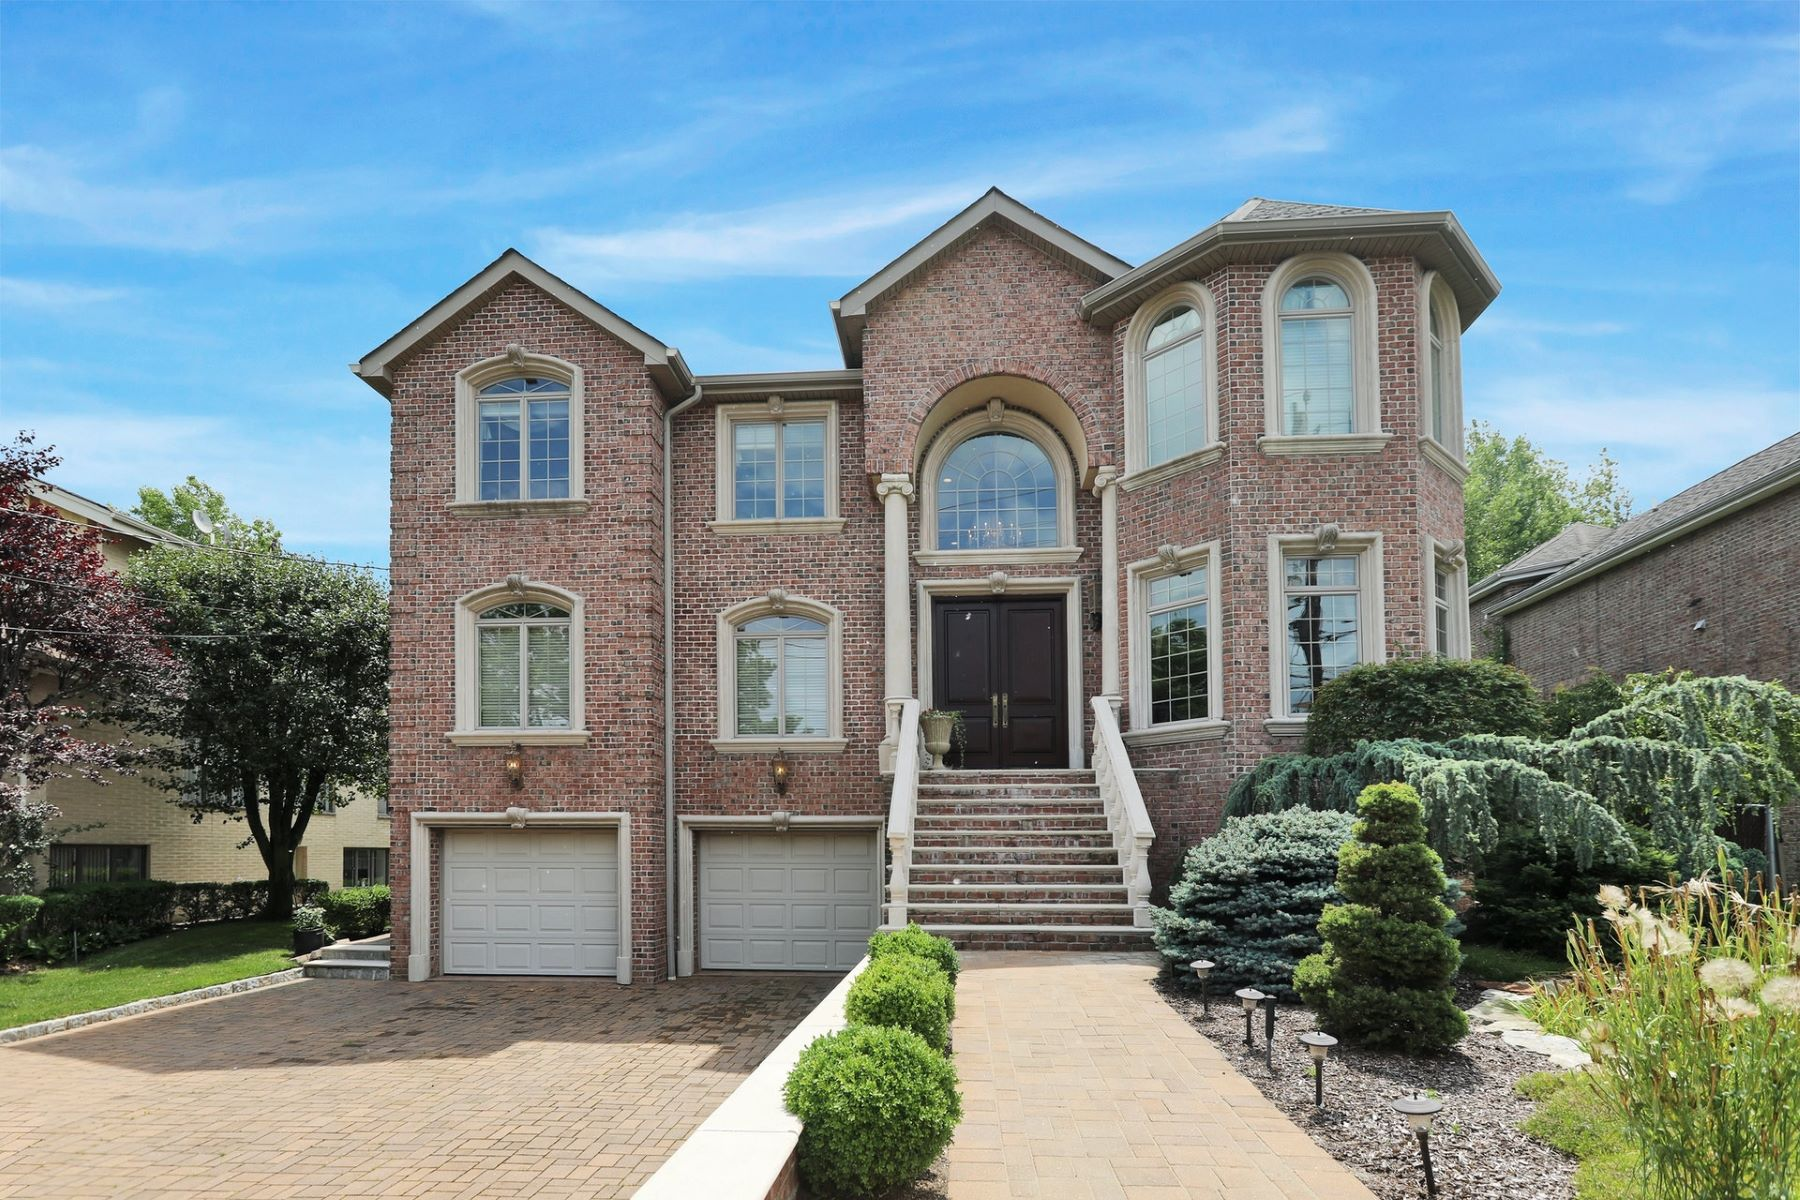 Single Family Homes for Active at Signature Home Englewood Cliffs Englewood Cliffs, New Jersey 07632 United States